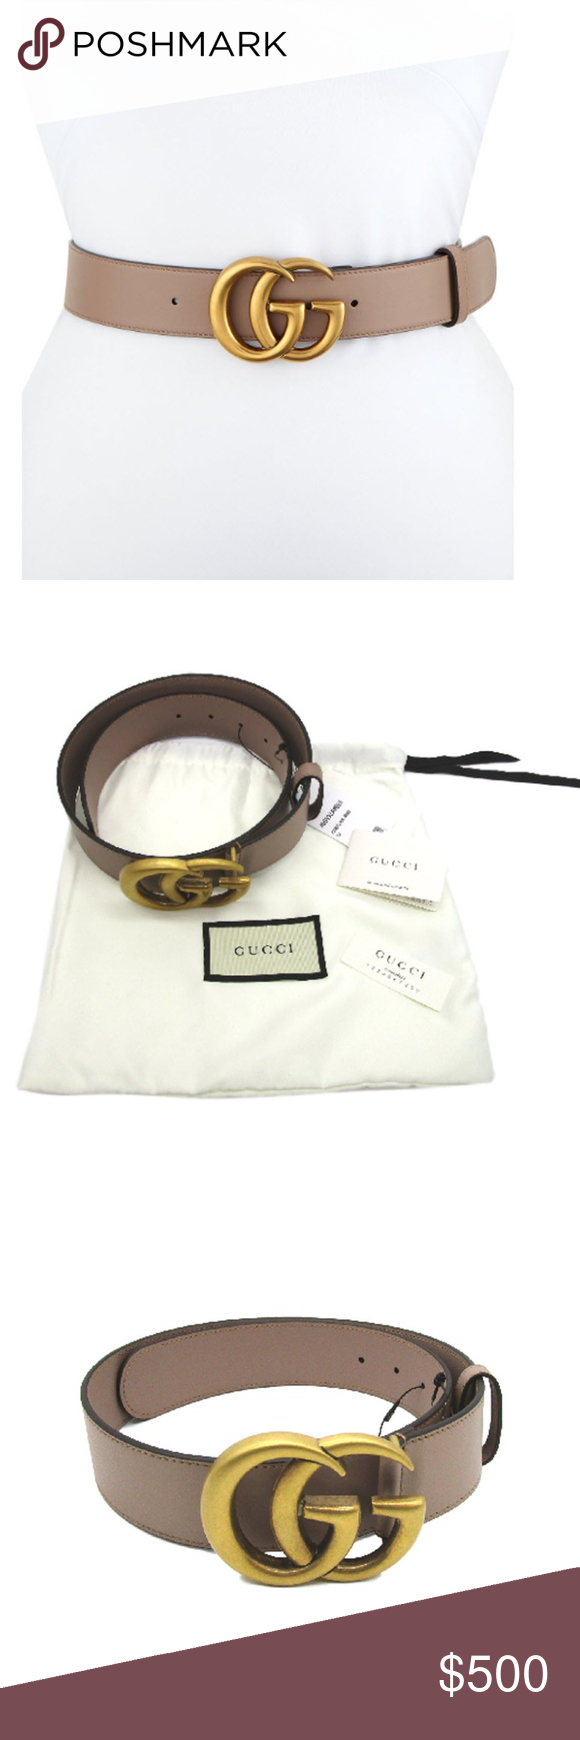 733c5d5d12a Gucci Porcelain Rose Marmont Gg Belt CONDITION New With Tags This item has  original tags and